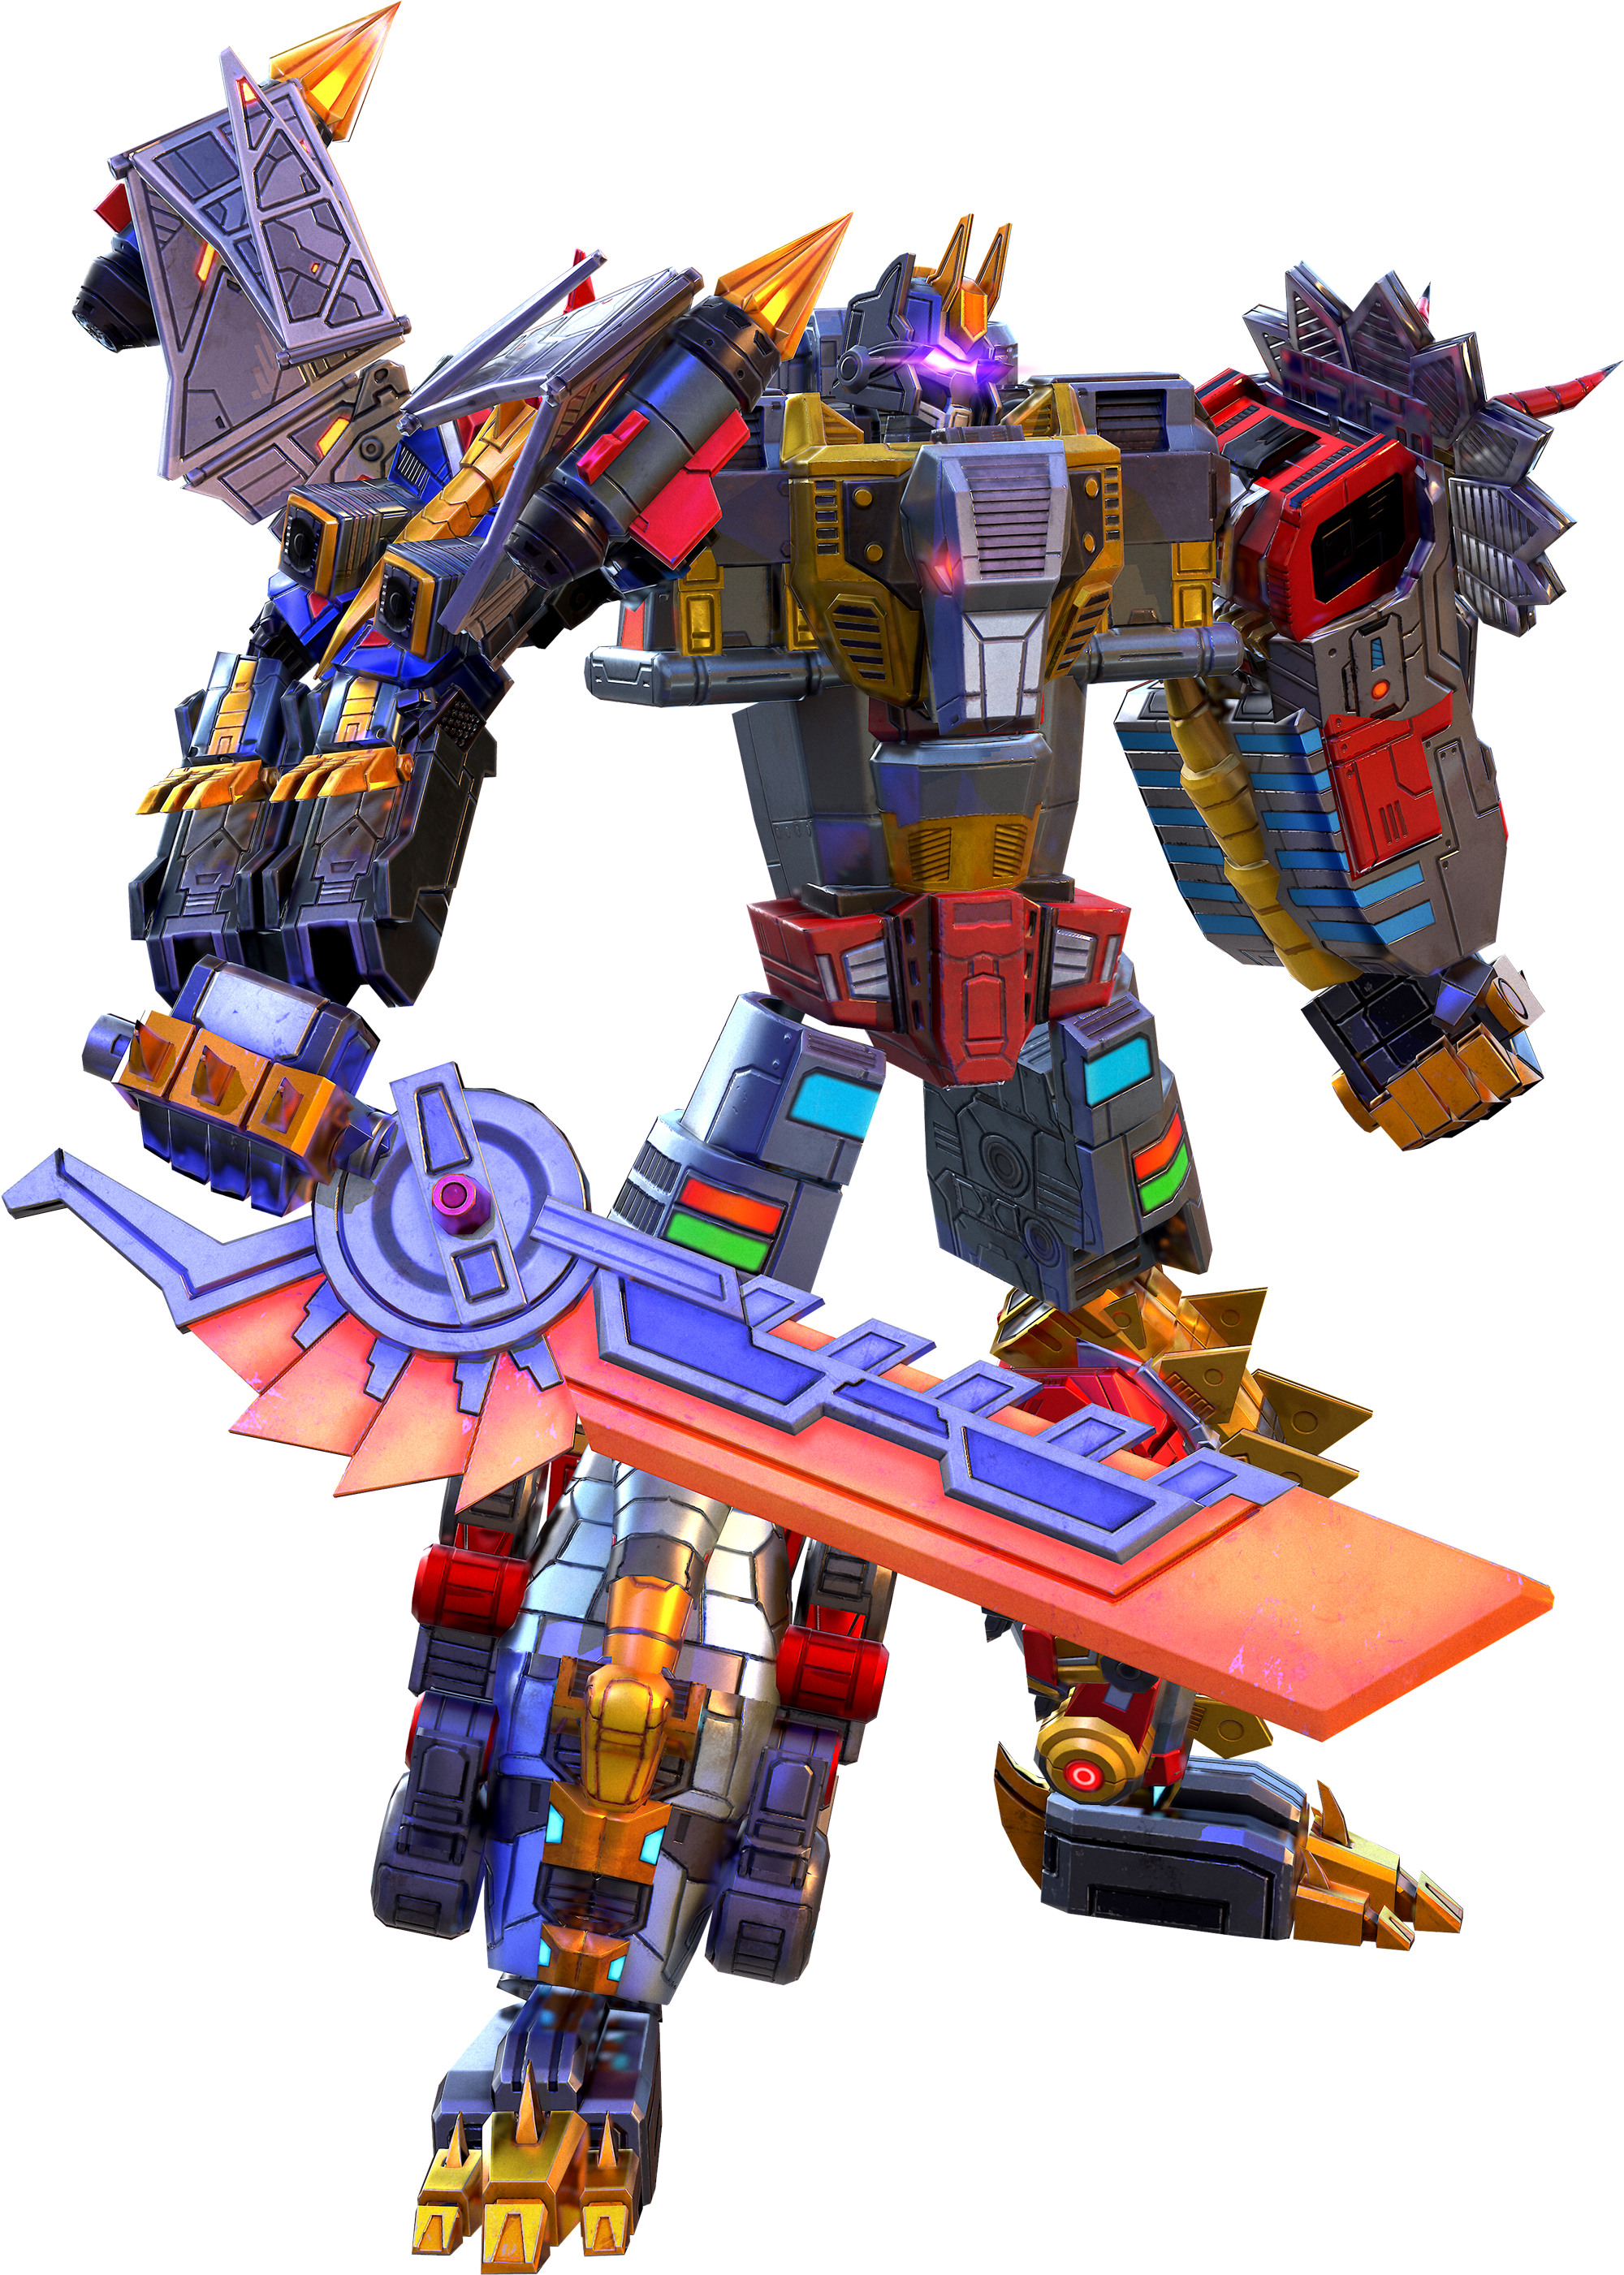 Clip combiner wars. News bwtf game dinobot